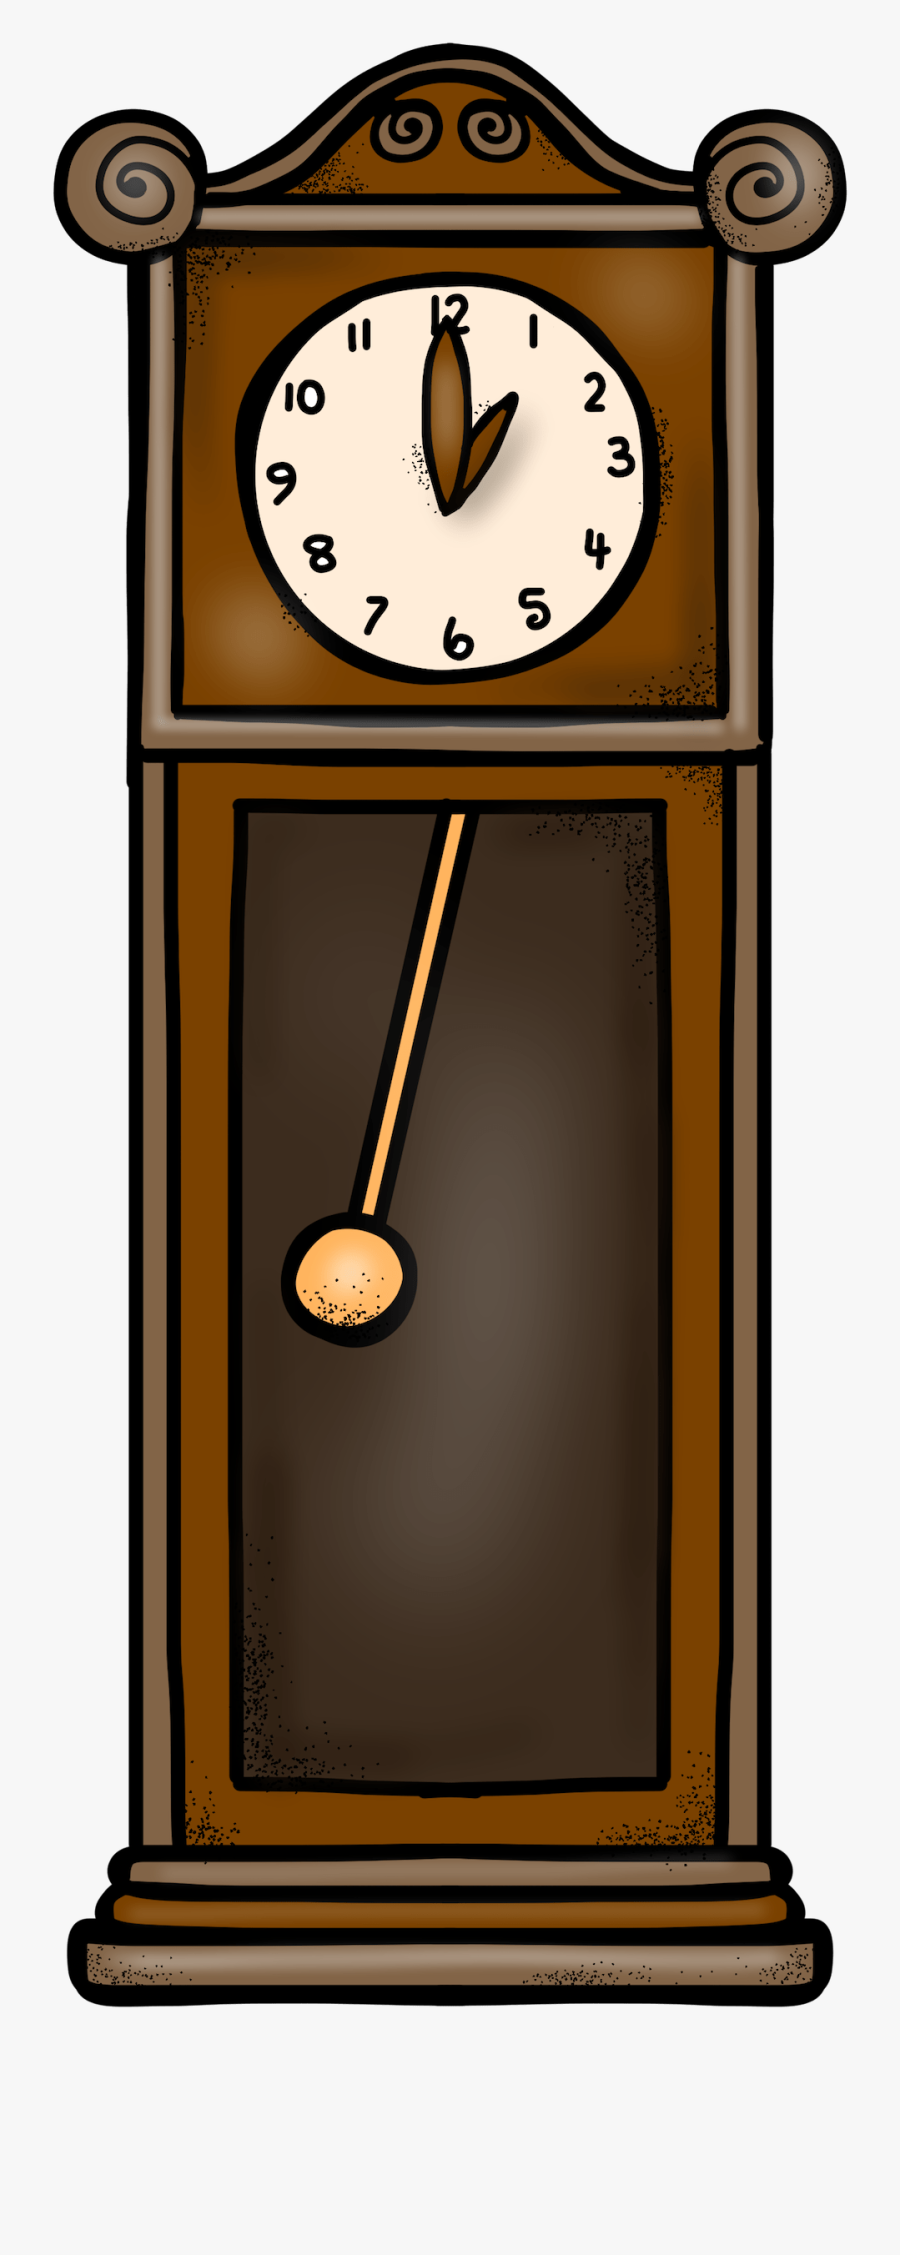 Hickory Dickory Dock Clip Art, Hd Png Download , Png - Clock Tower Hickory Dickory Dock, Transparent Clipart